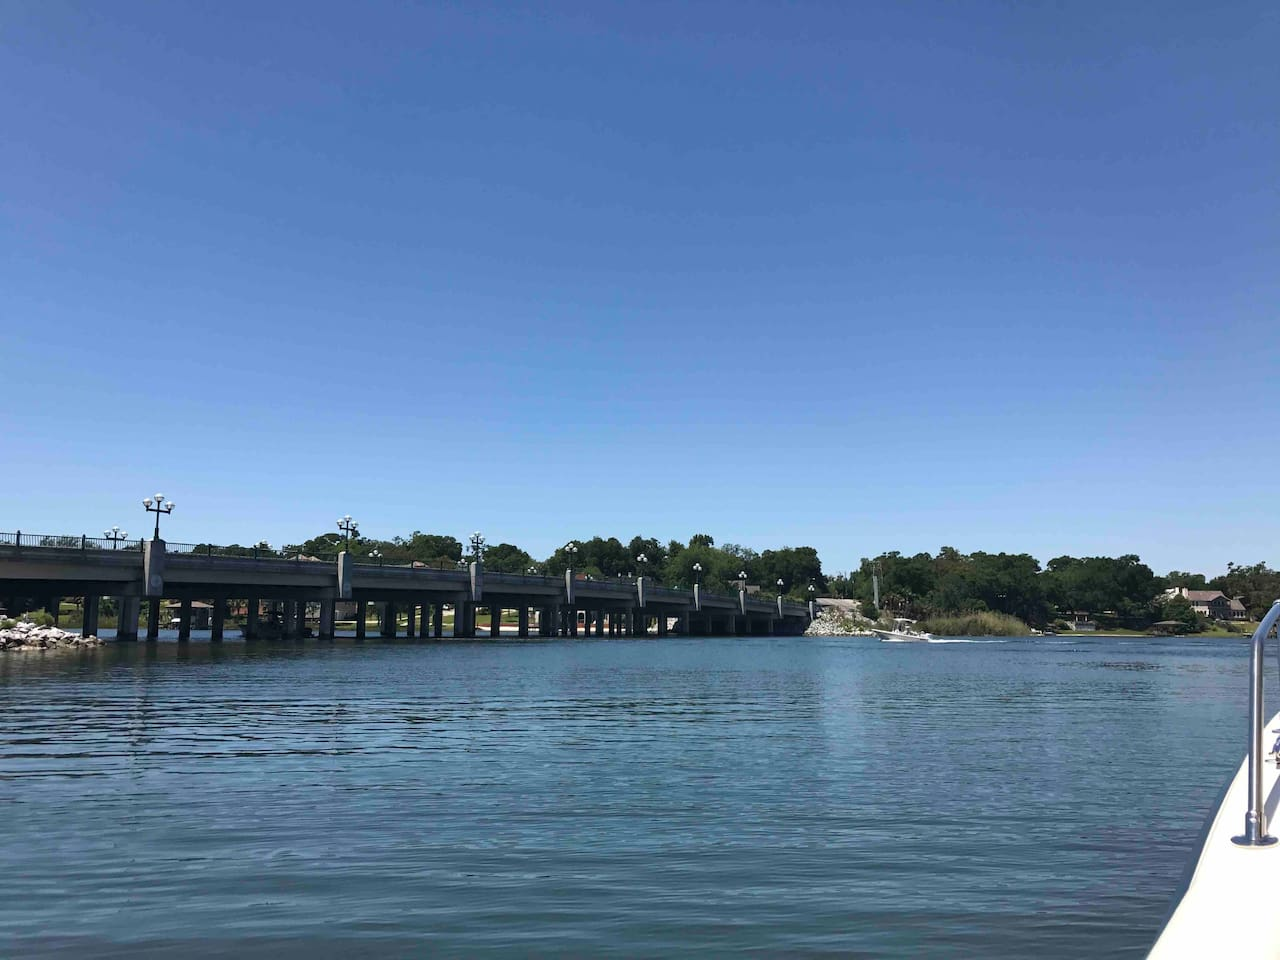 Bayou Cottage Retreat is located one block from the boat launch and marina. Experience the boats coming in from a long day of fishing while taking advantage of the most beautiful views Bayou Texar has to offer!